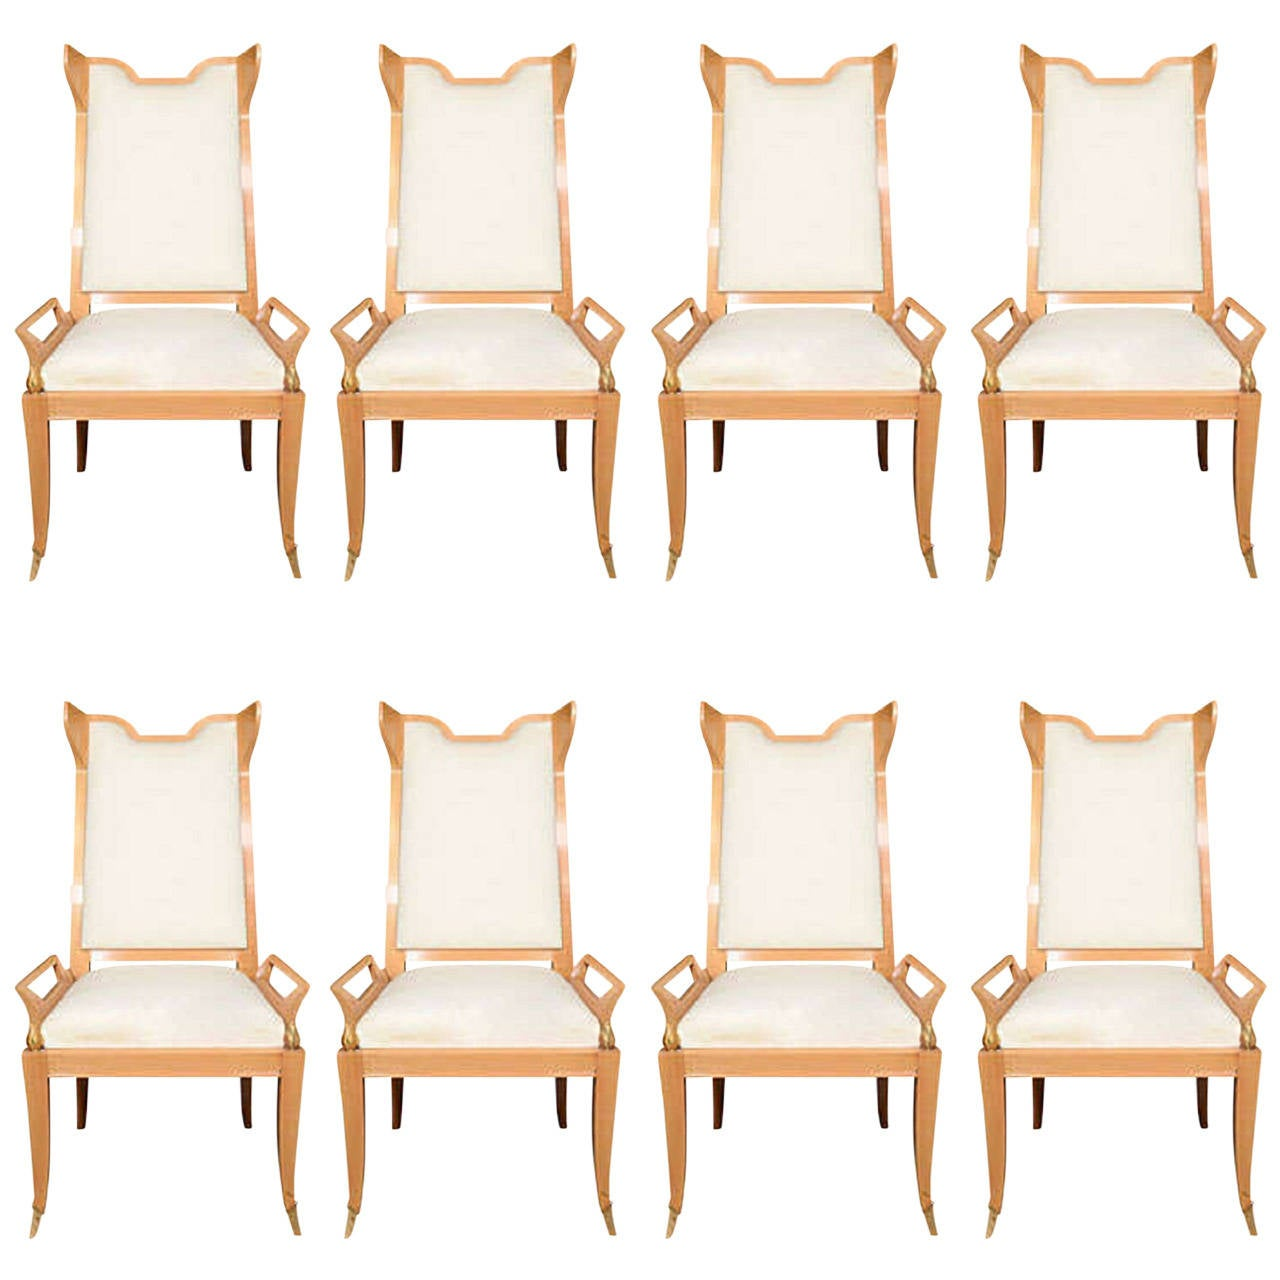 John Widdicomb Furniture For Sale ... Eight Albano Dining Chairs, American, circa 1950 For Sale at 1stdibs